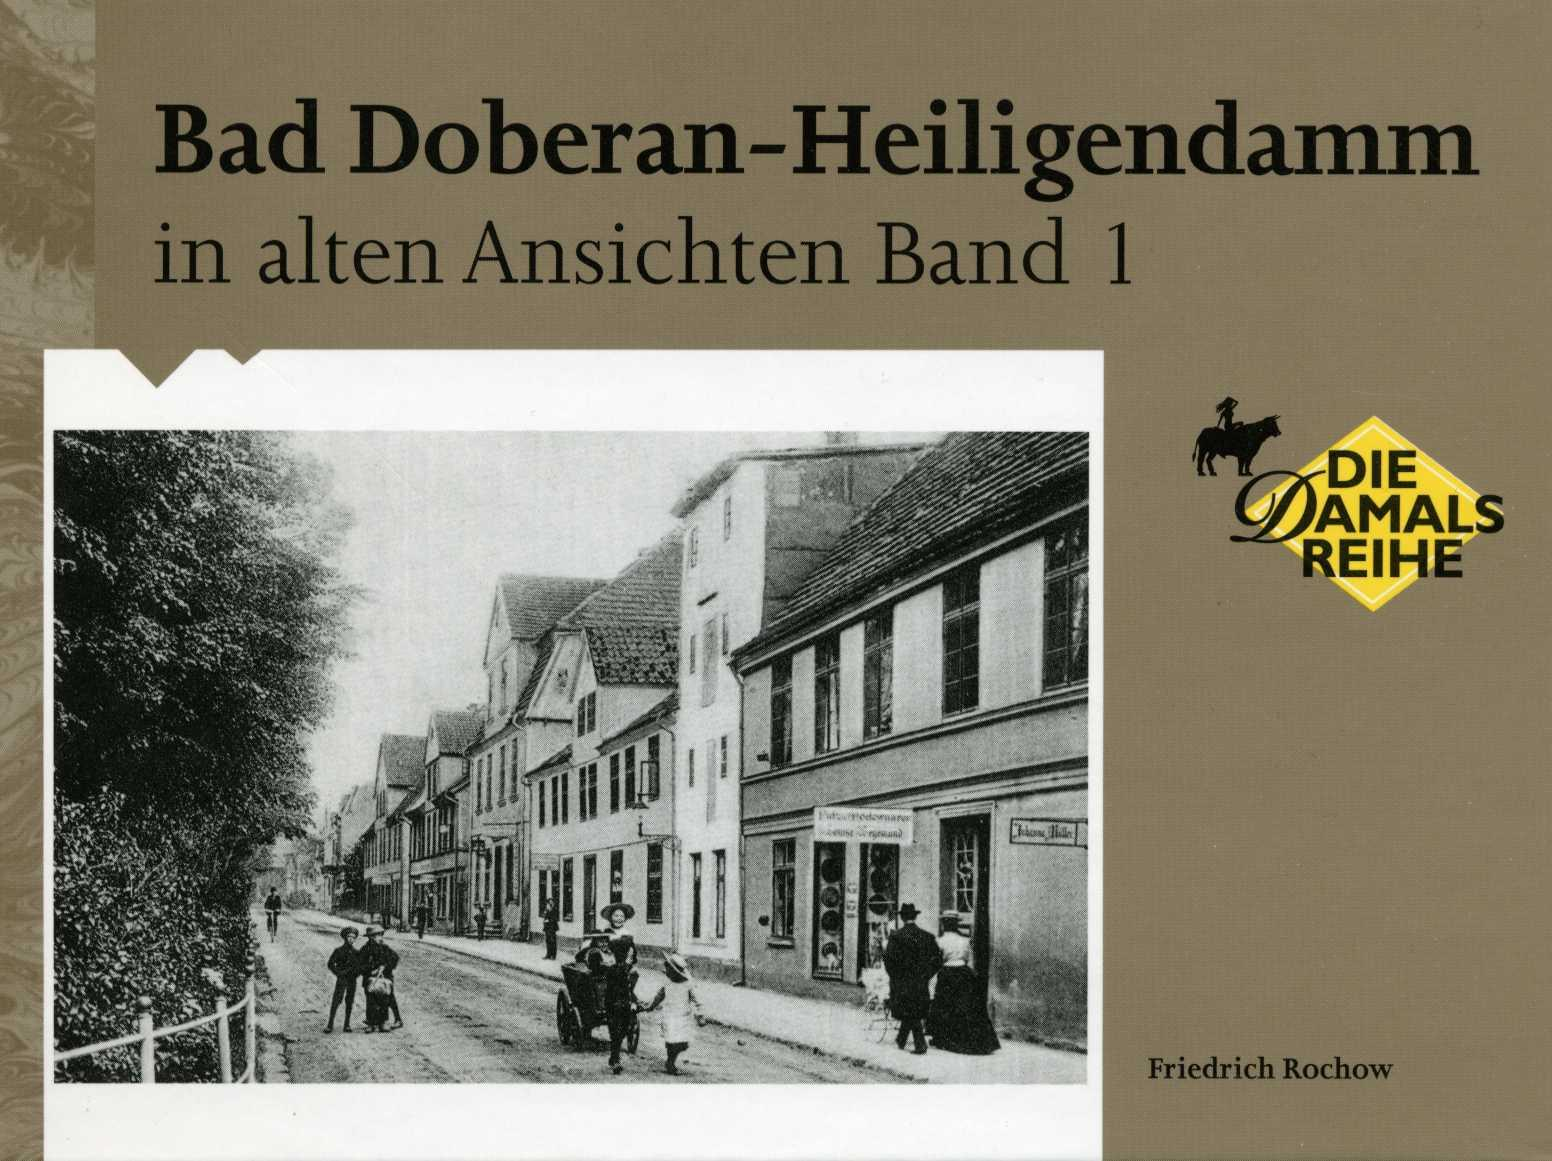 Bad Doberan-Heiligendamm